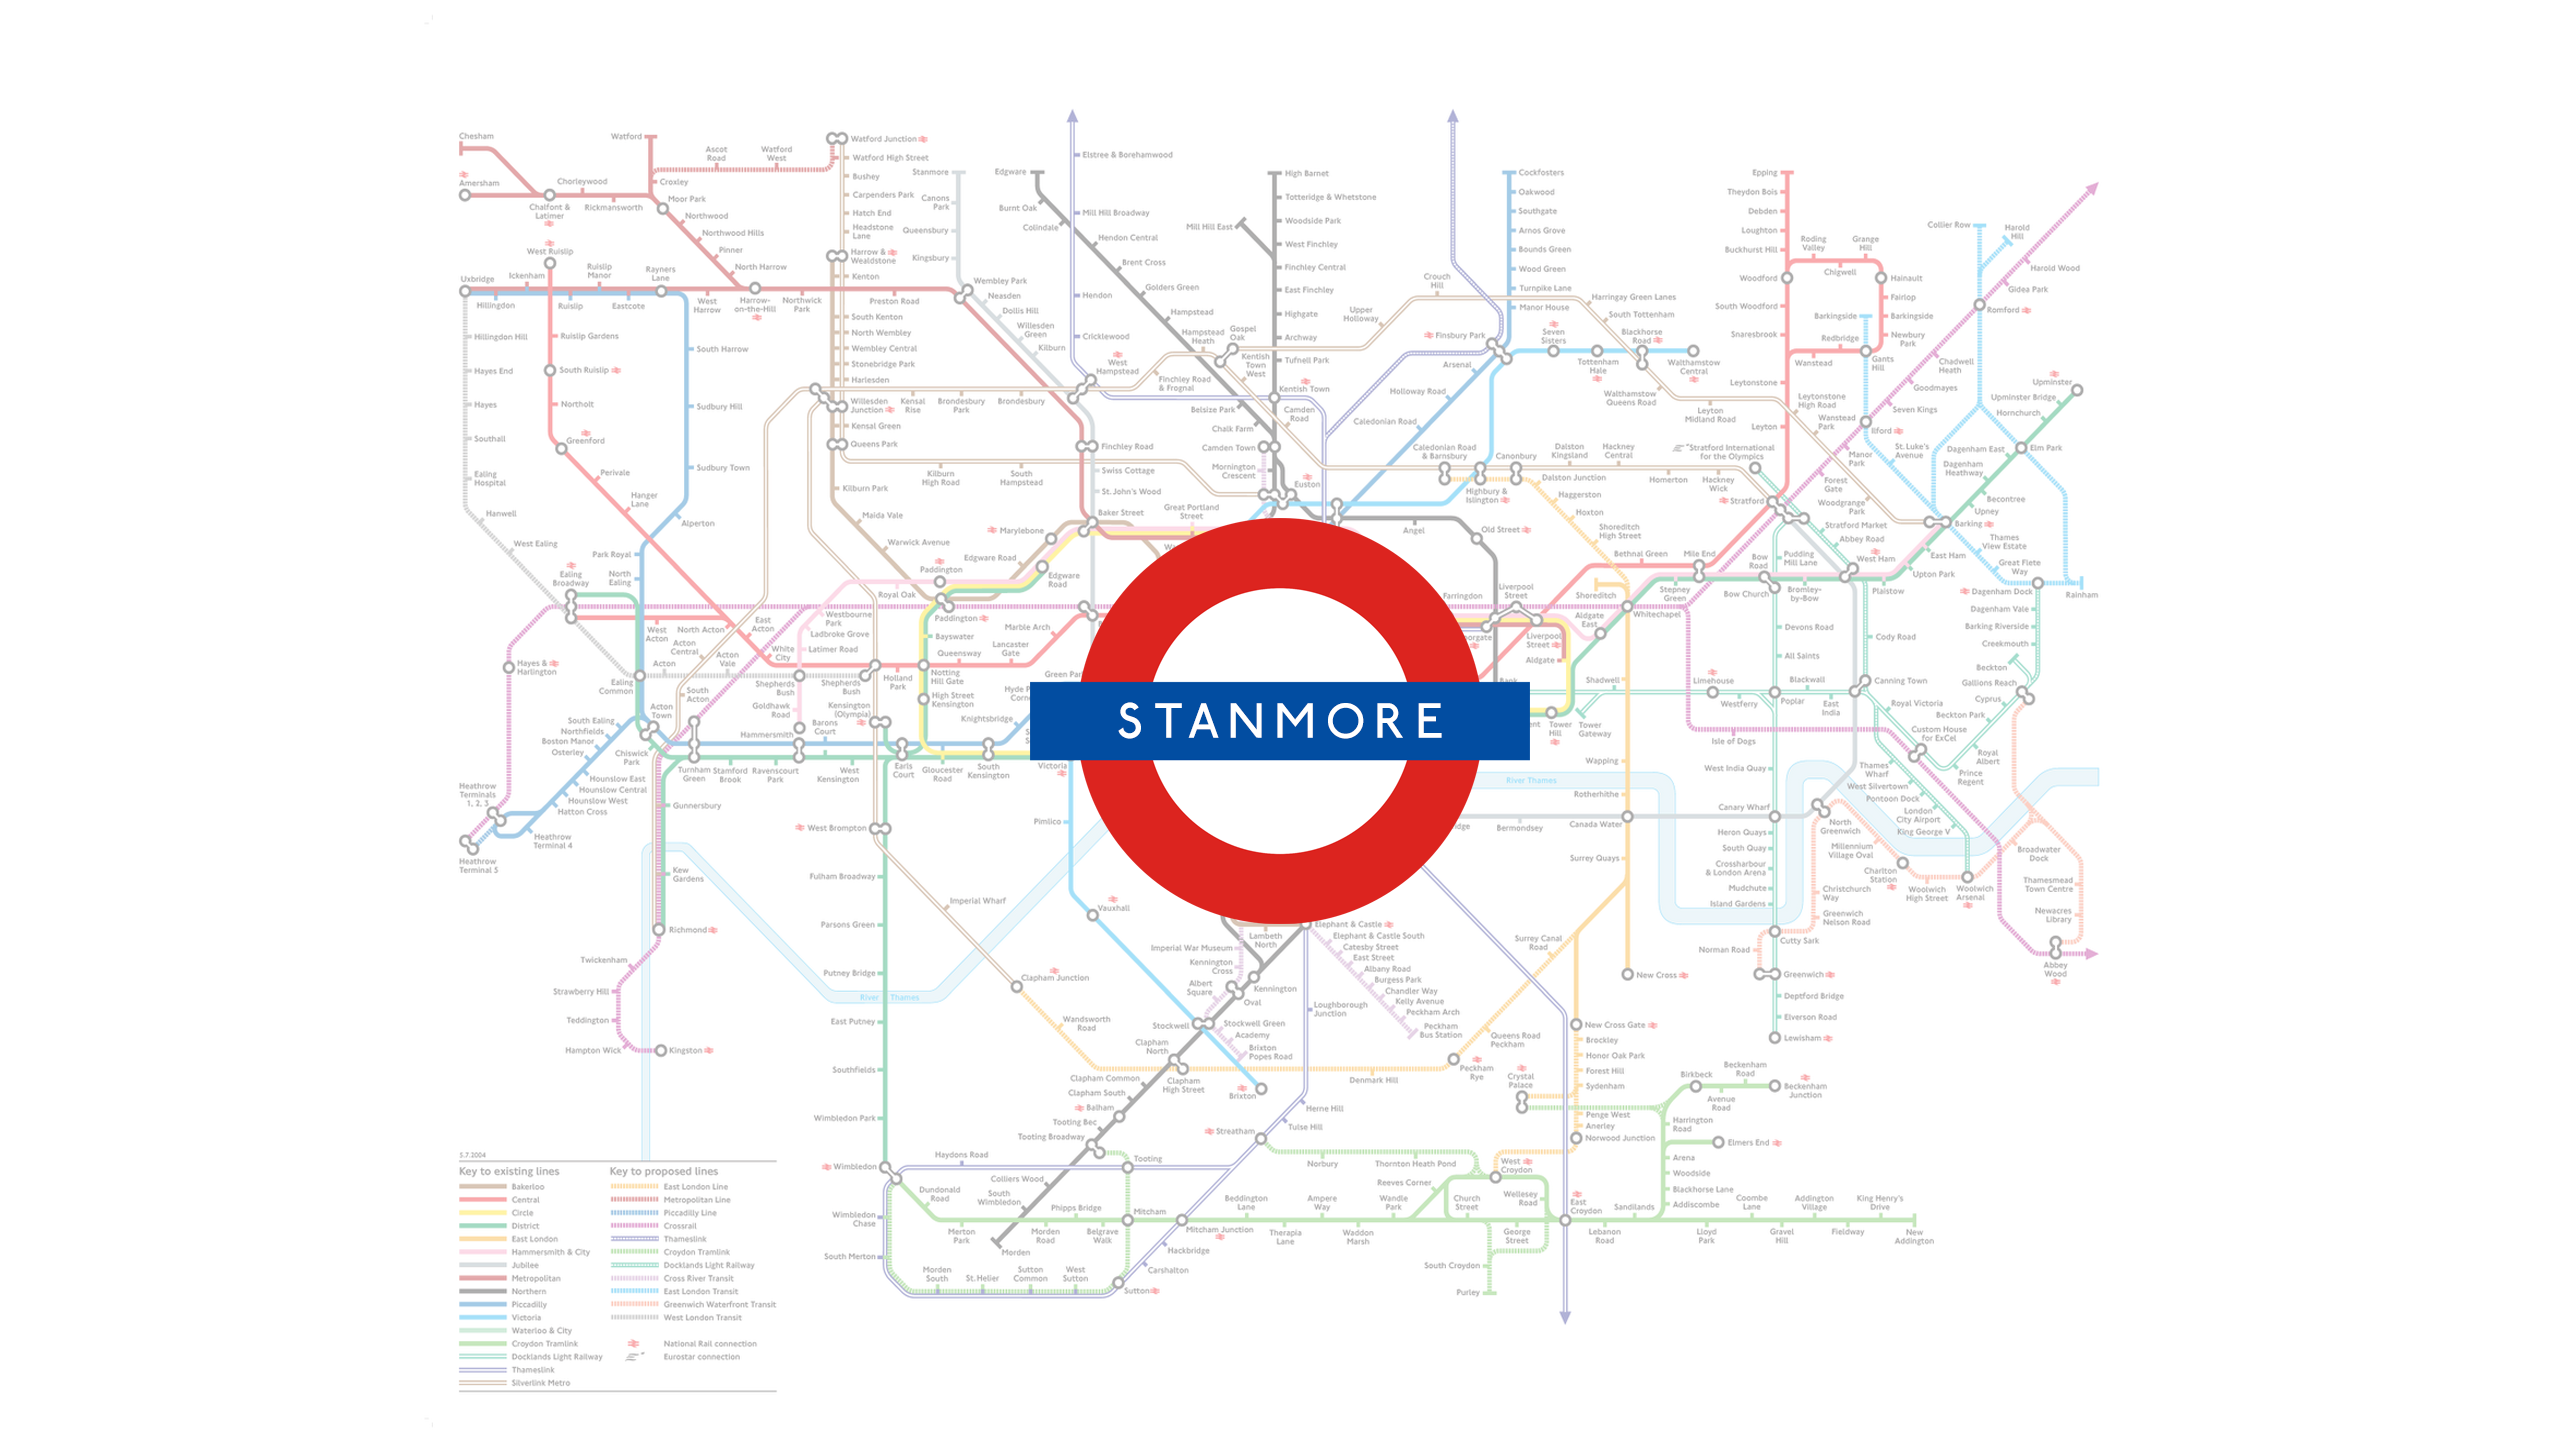 Stanmore (Map)